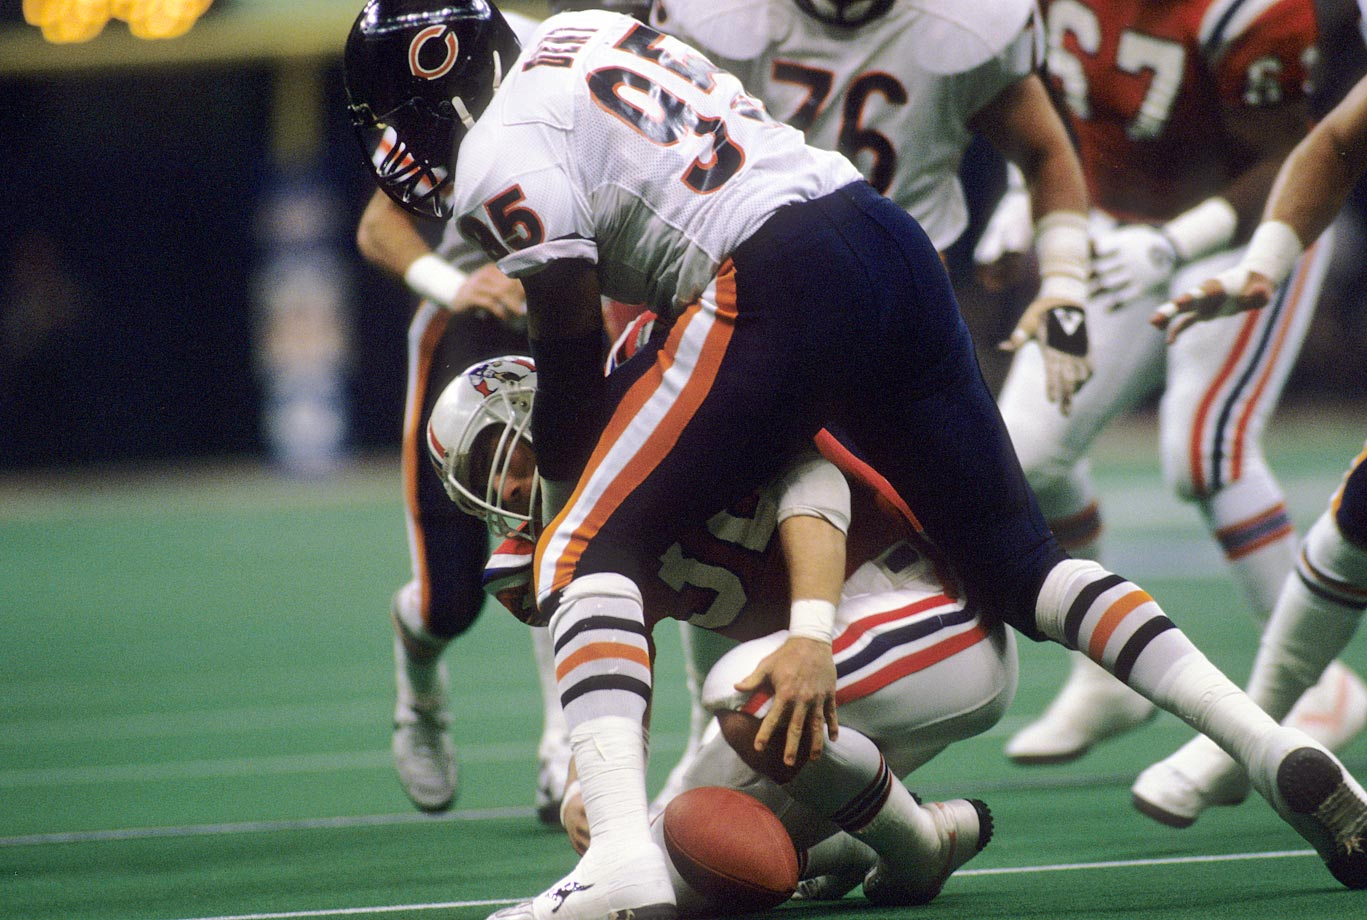 An eighth-round pick out of Tennessee State, Dent rose to unexpected heights as one of the most important parts of Buddy Ryan's 46 defense in Chicago. He was the MVP of Super Bowl XX, and he was highly effective into his later years, amassing 12.5 sacks in 1993 at age 33. He finished his career with 137.5 sacks, four Pro Bowls and one first-team All-Pro mention.